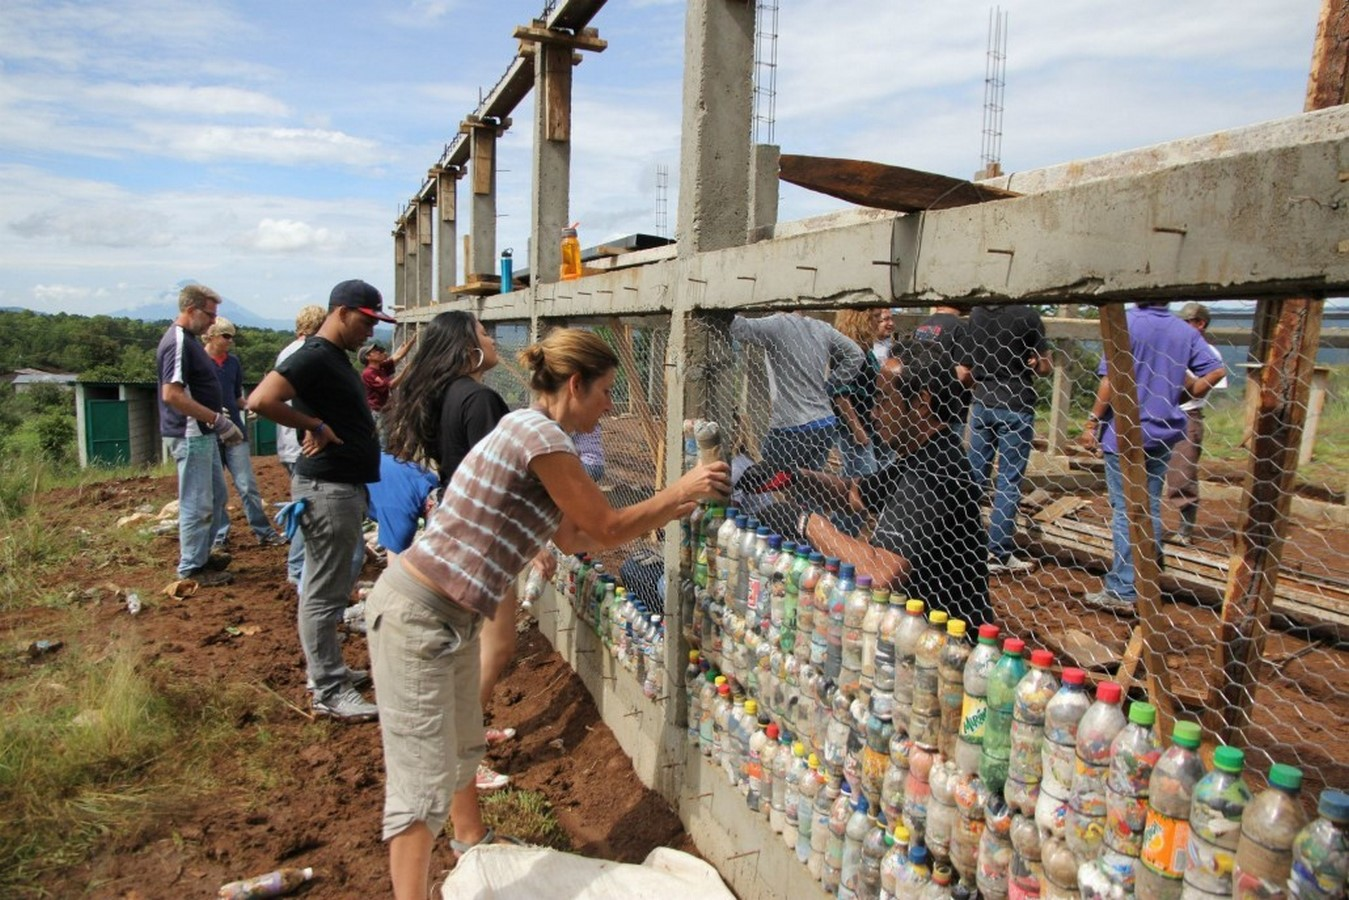 10 Reasons to architects should practice for humanitarian architecture - Sheet10